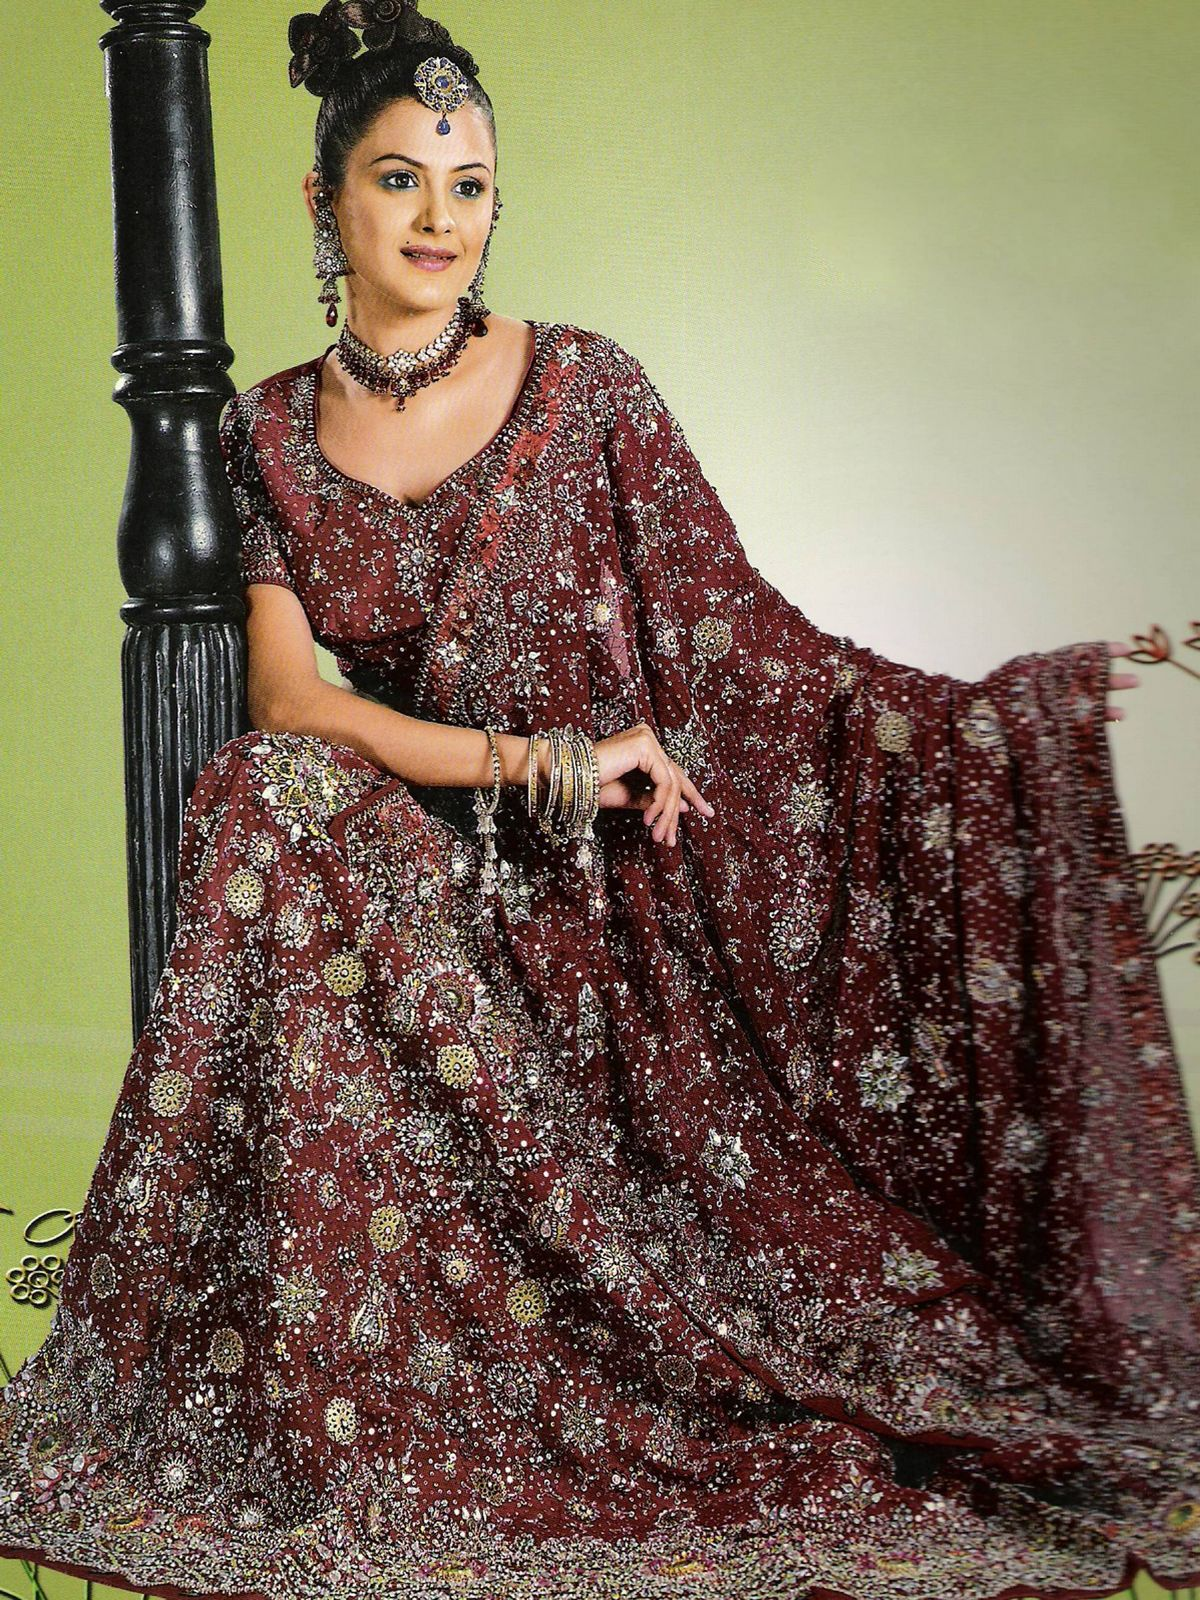 Fashion Style: Indian Wedding Outfits Lengha Images